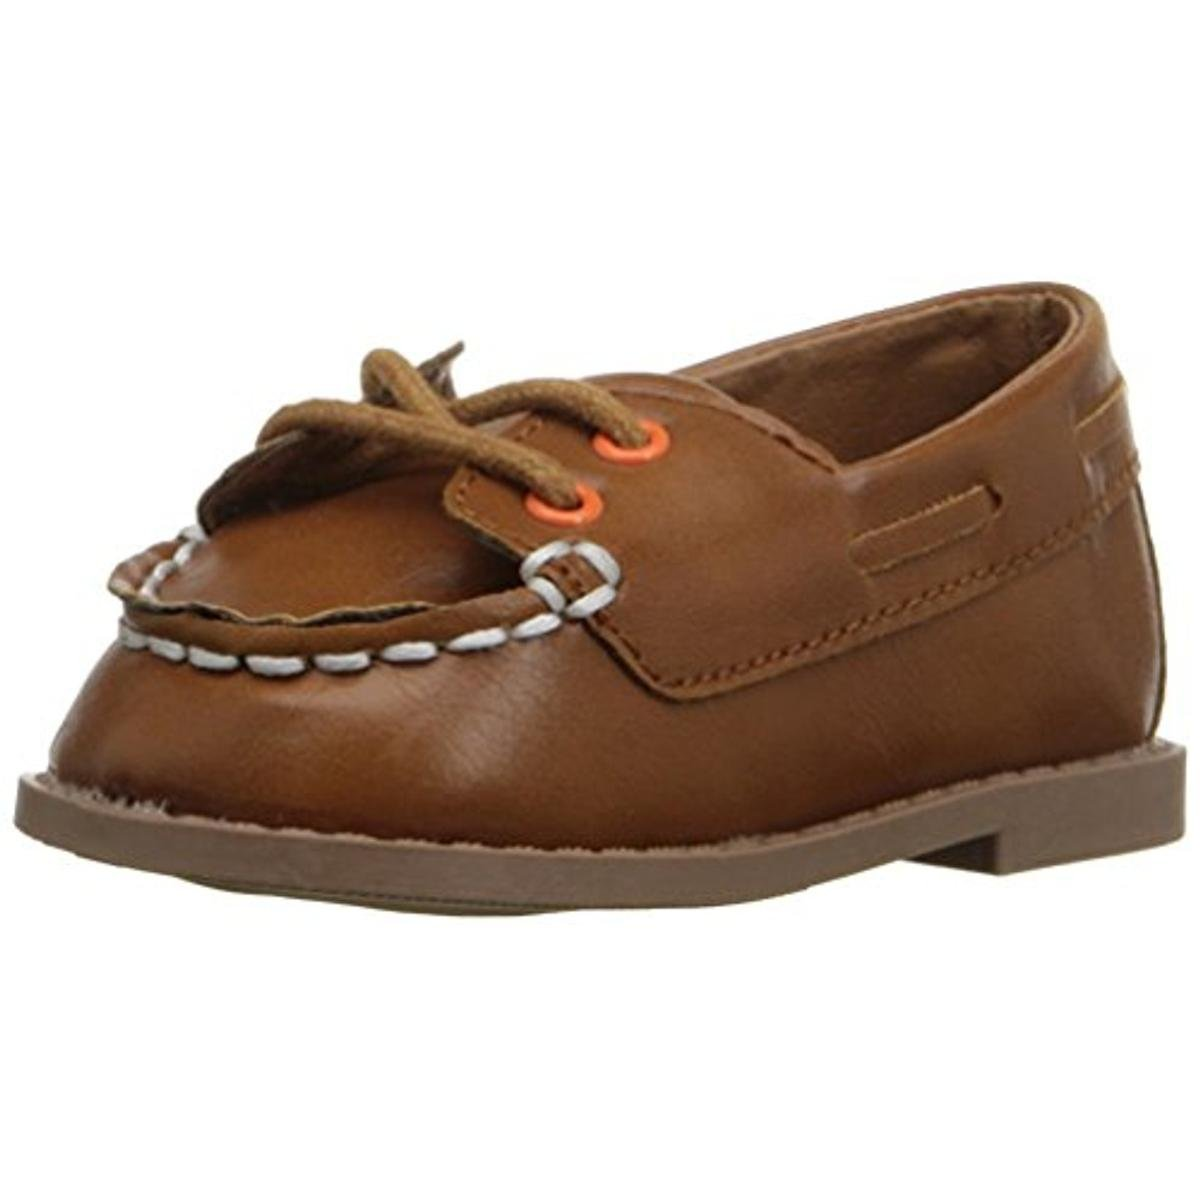 Rugged Bear Boys' RB24601 Oxford Brown 6 M US Toddler by Rugged Bear (Image #1)